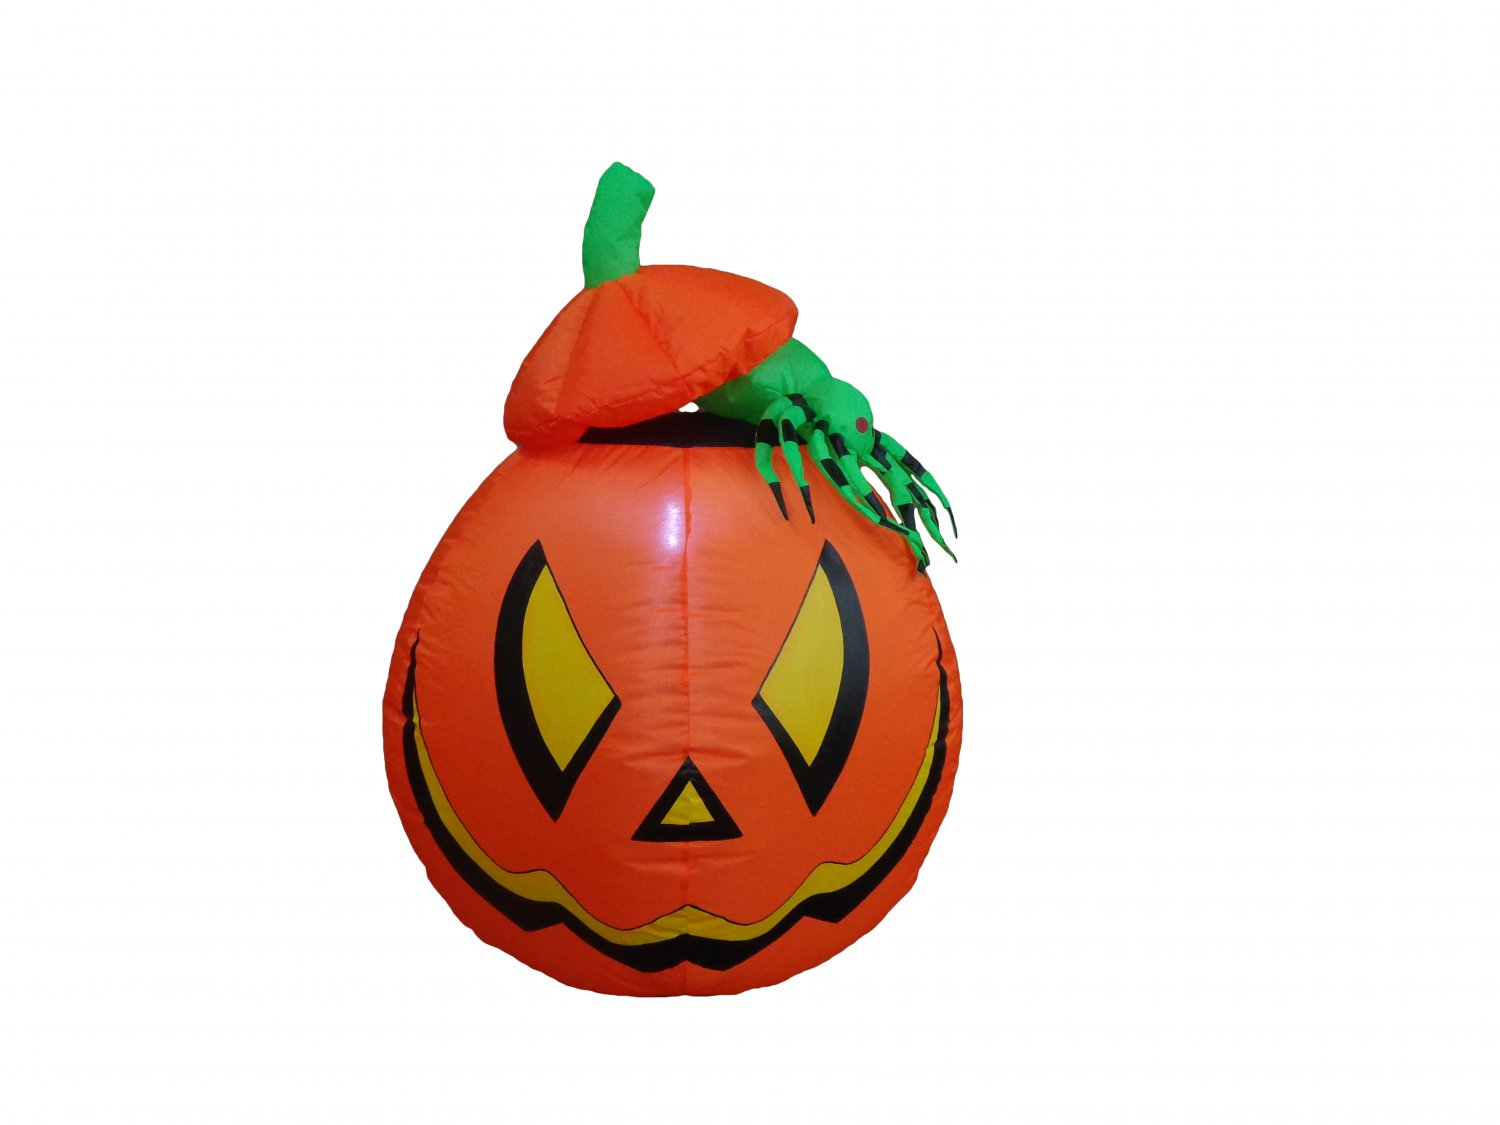 4 Foot Halloween Inflatable Lighted Pumpkin Jack-o-lanterns with Spider Yard Art Decoration #283